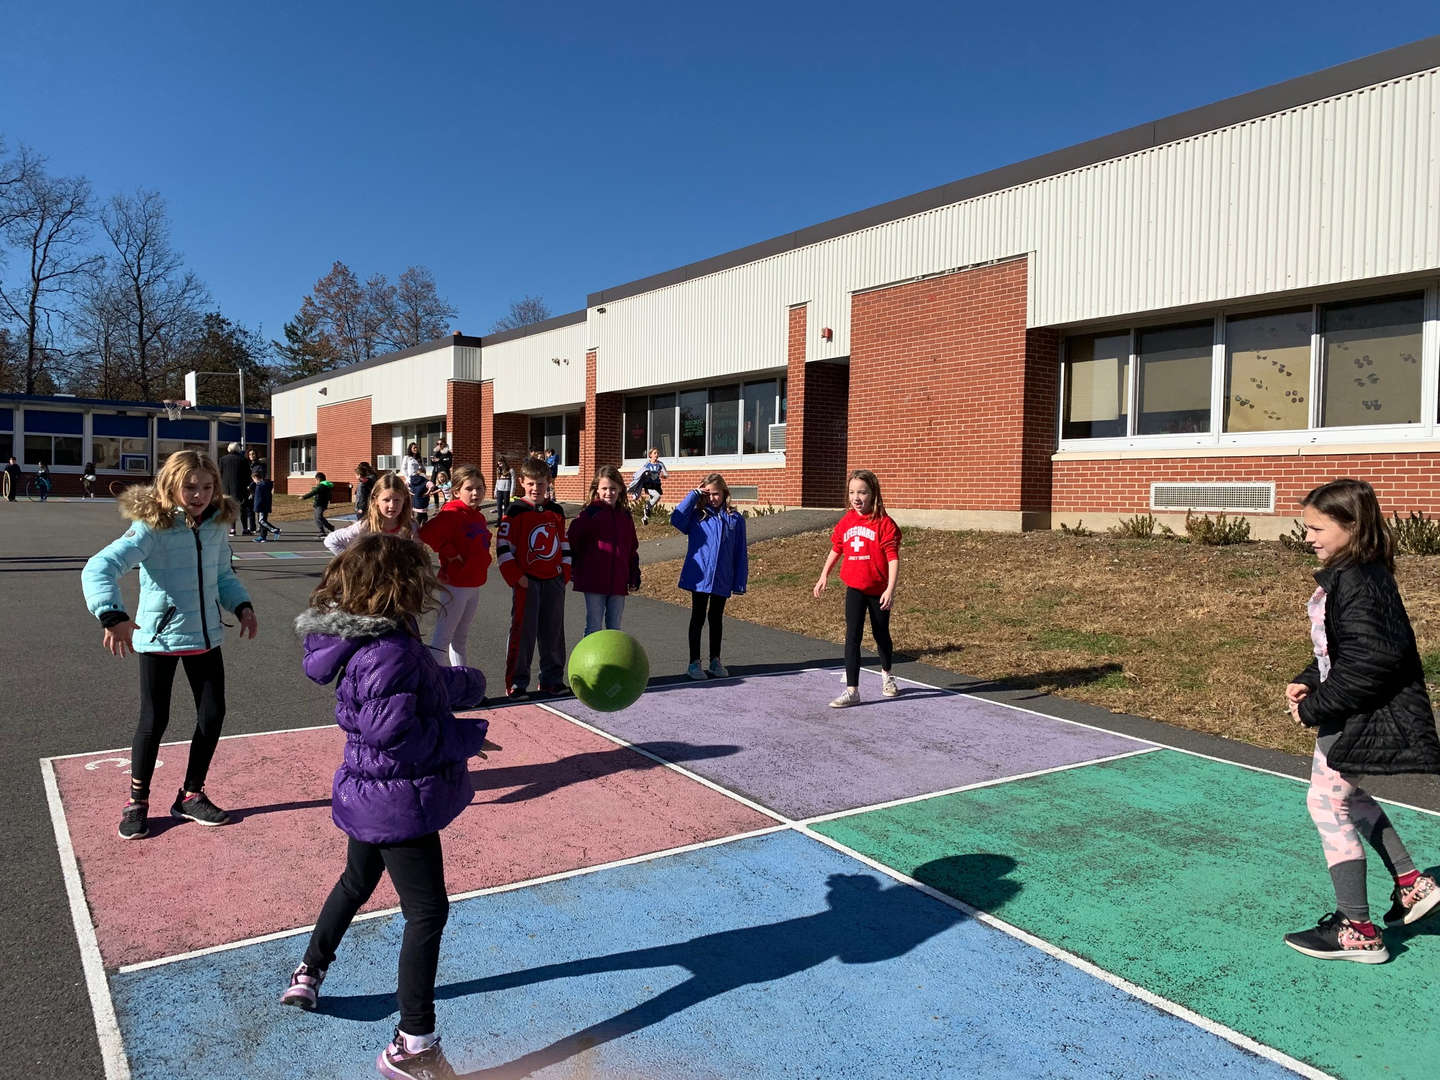 Children playing four square